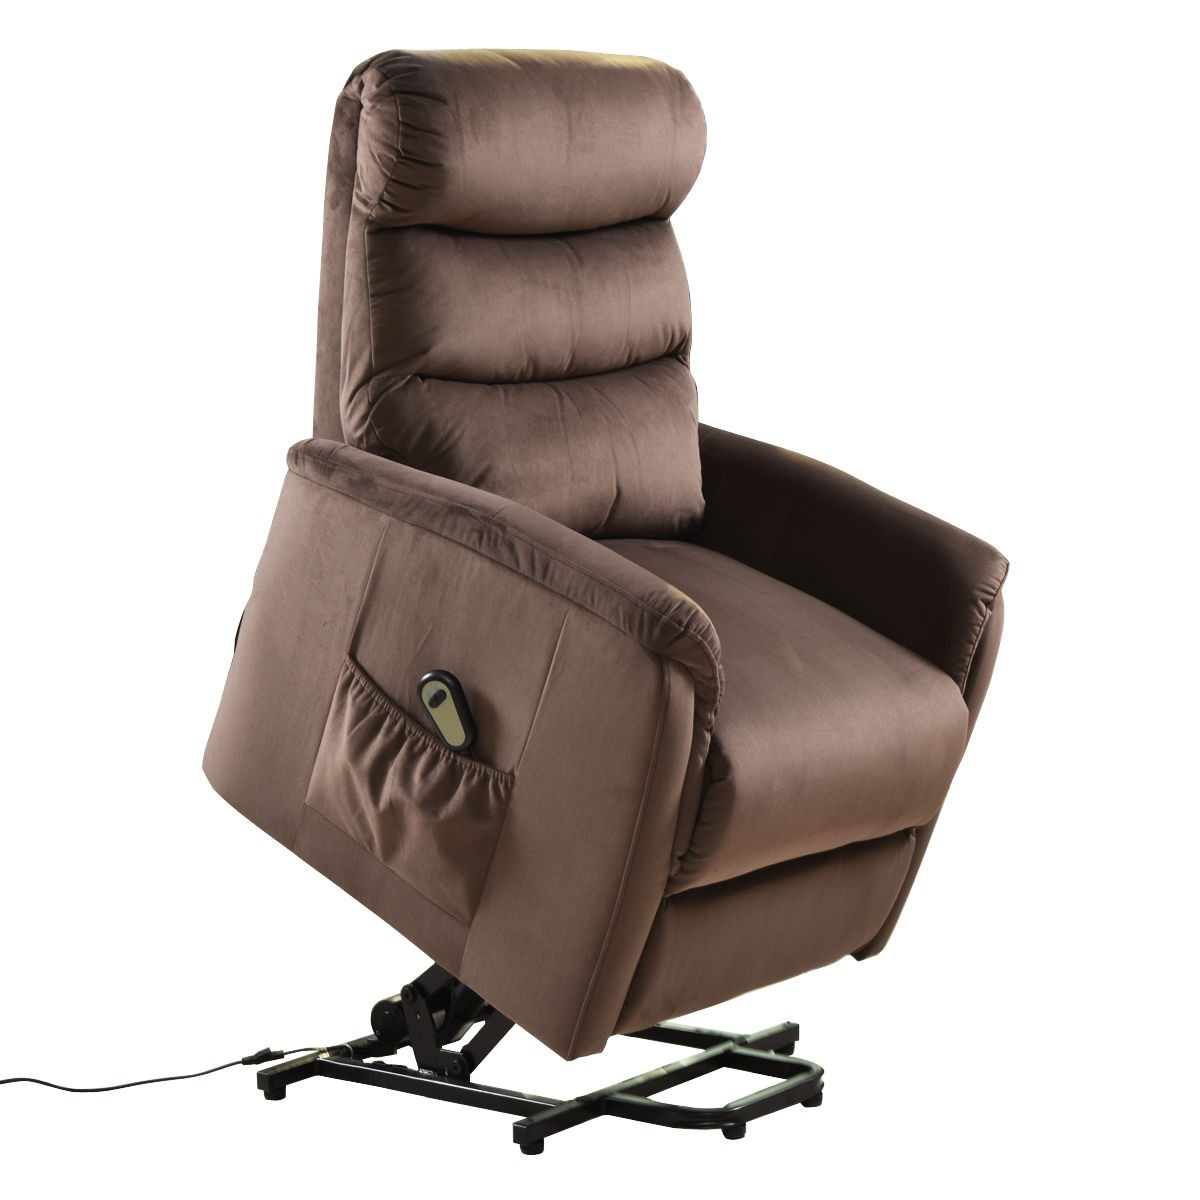 Luxury Power Lift Chair Recliner Armchair Electric Fabric